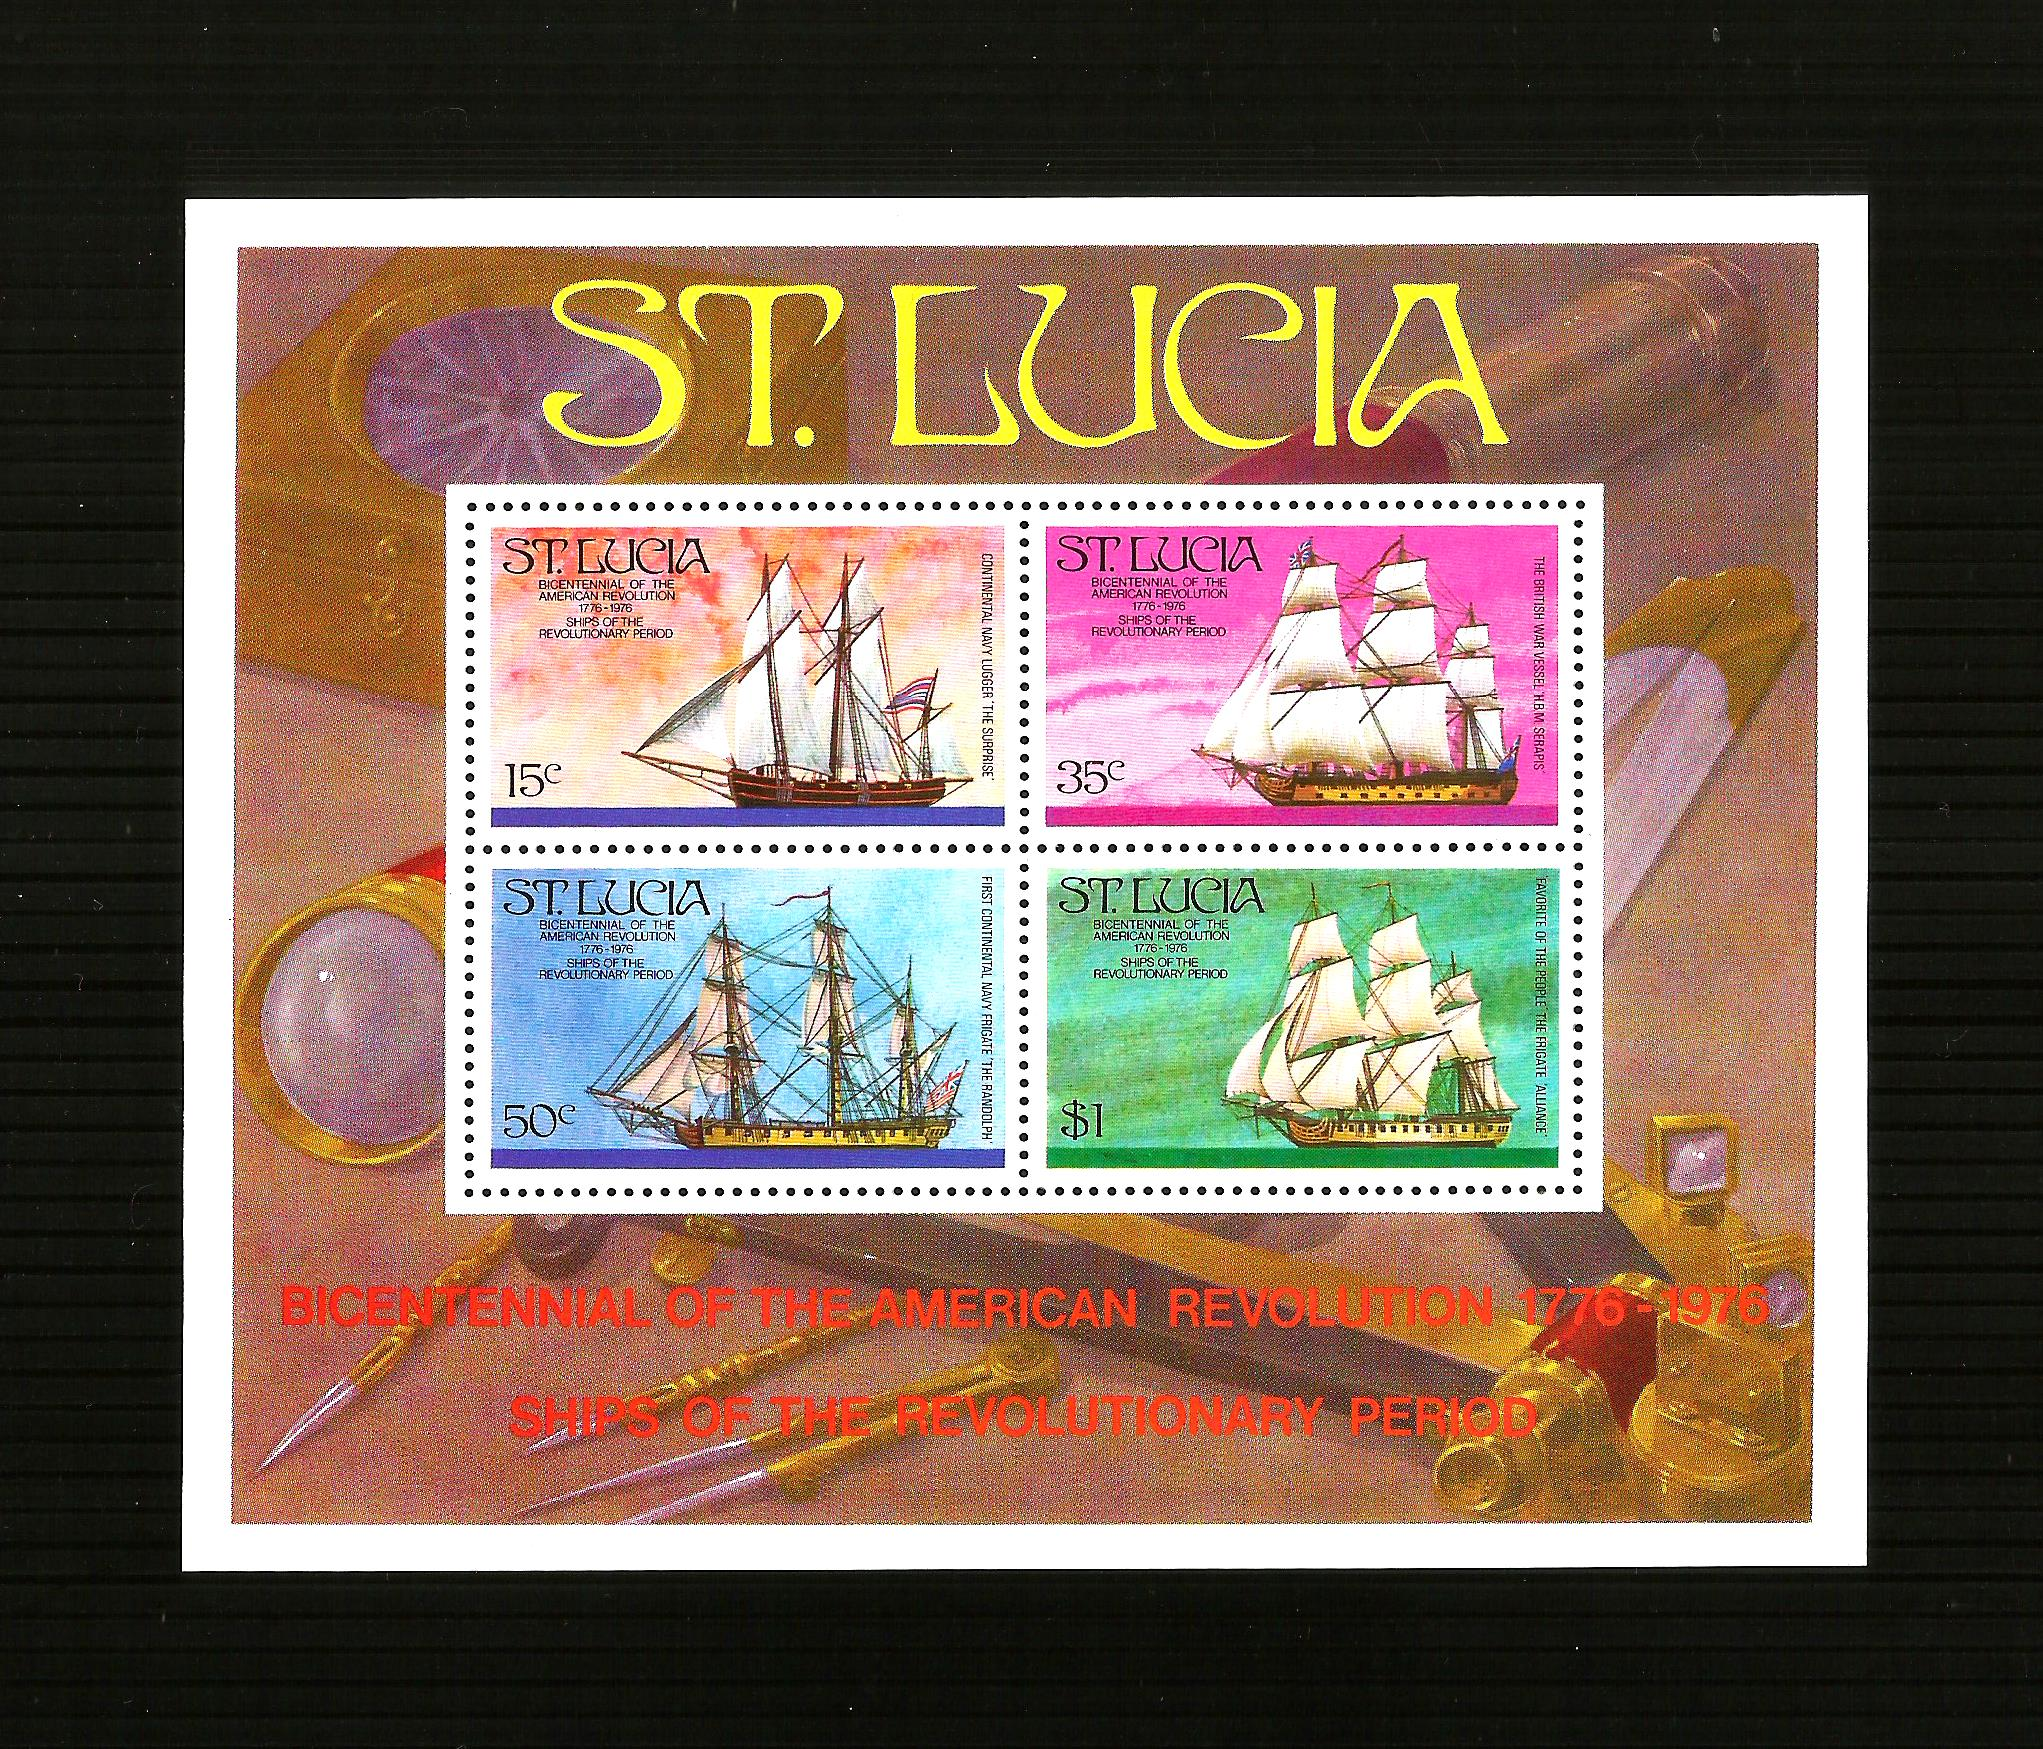 200 MIDDLE St Lucia - 1976, American Revolution (Ships) sheet -